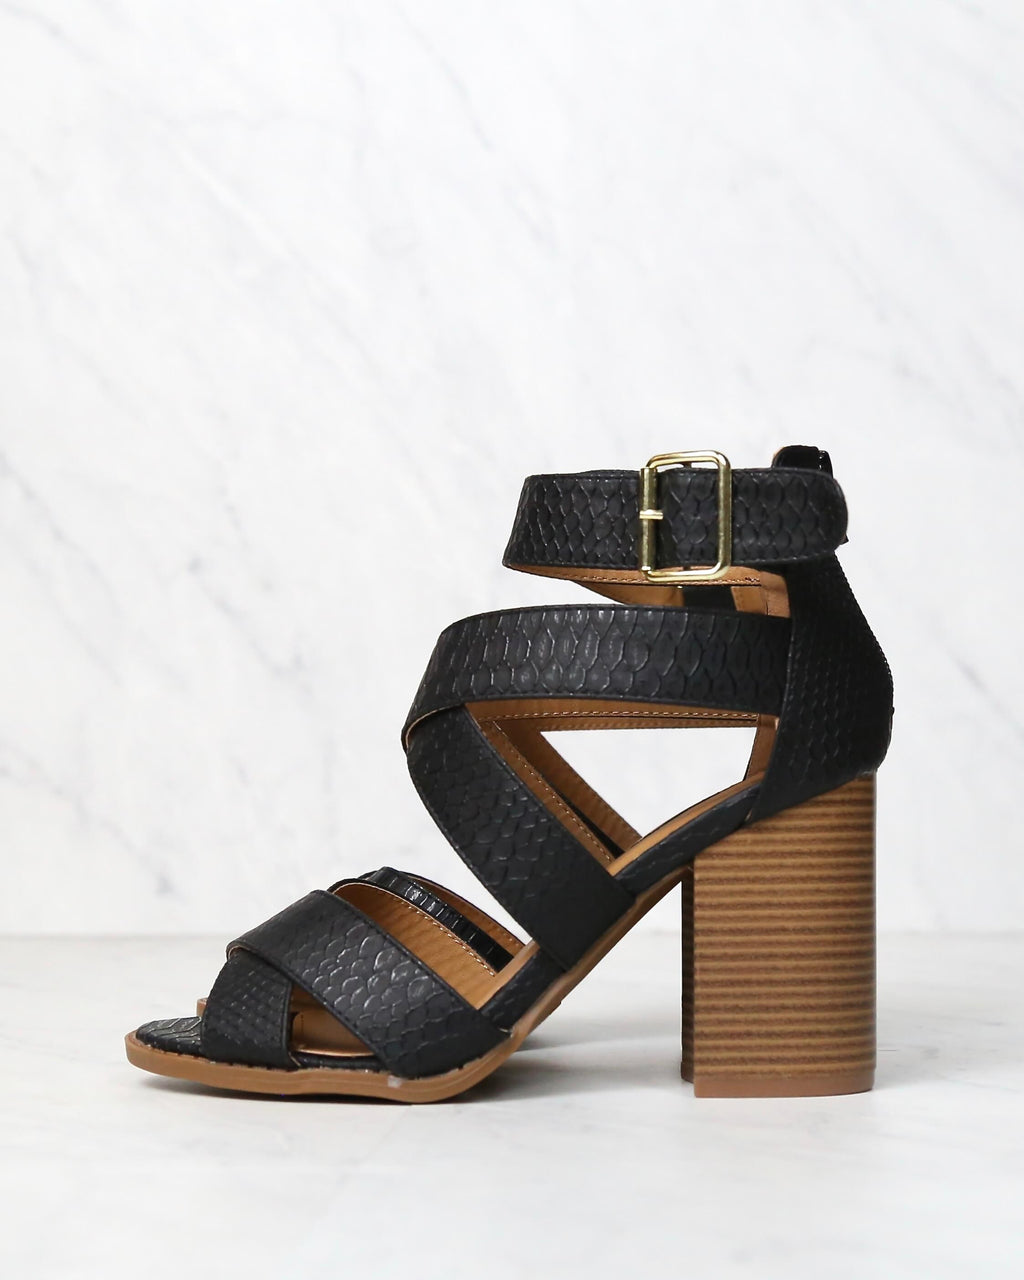 sneaky snake textured strappy peep toe heeled sandal in black